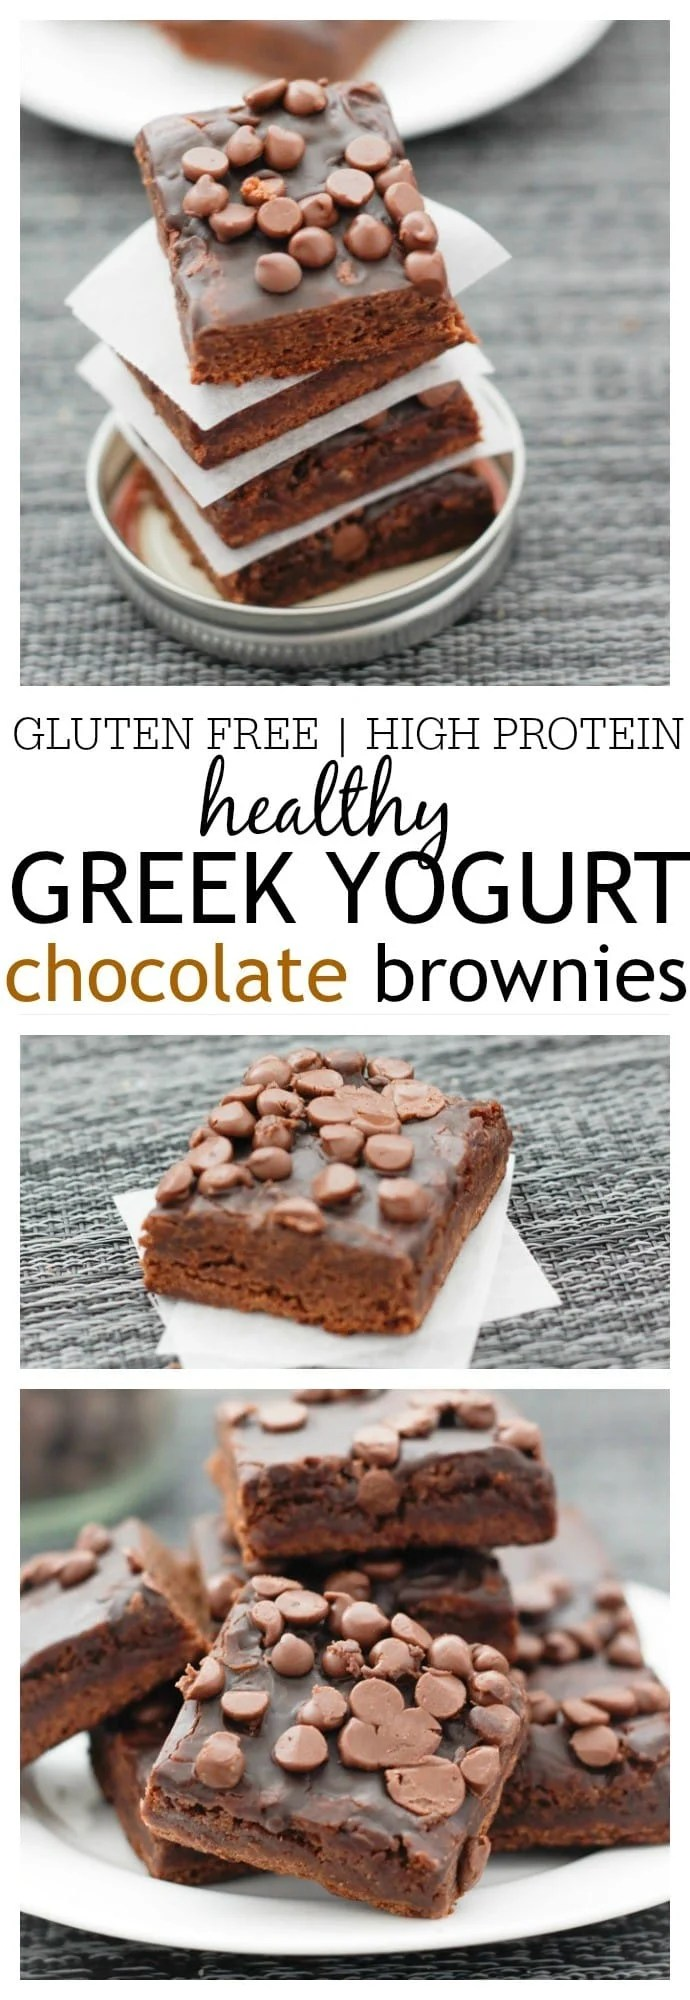 Healthy Greek Yogurt Chocolate Brownies- These extremely fudgey, moist and full of chocolatey goodness chocolate brownies are secretly healthy- Based off Greek Yogurt, they are also gluten free, high in protein and VERY low in sugar! @thebigmansworld - thebigmansworld.com